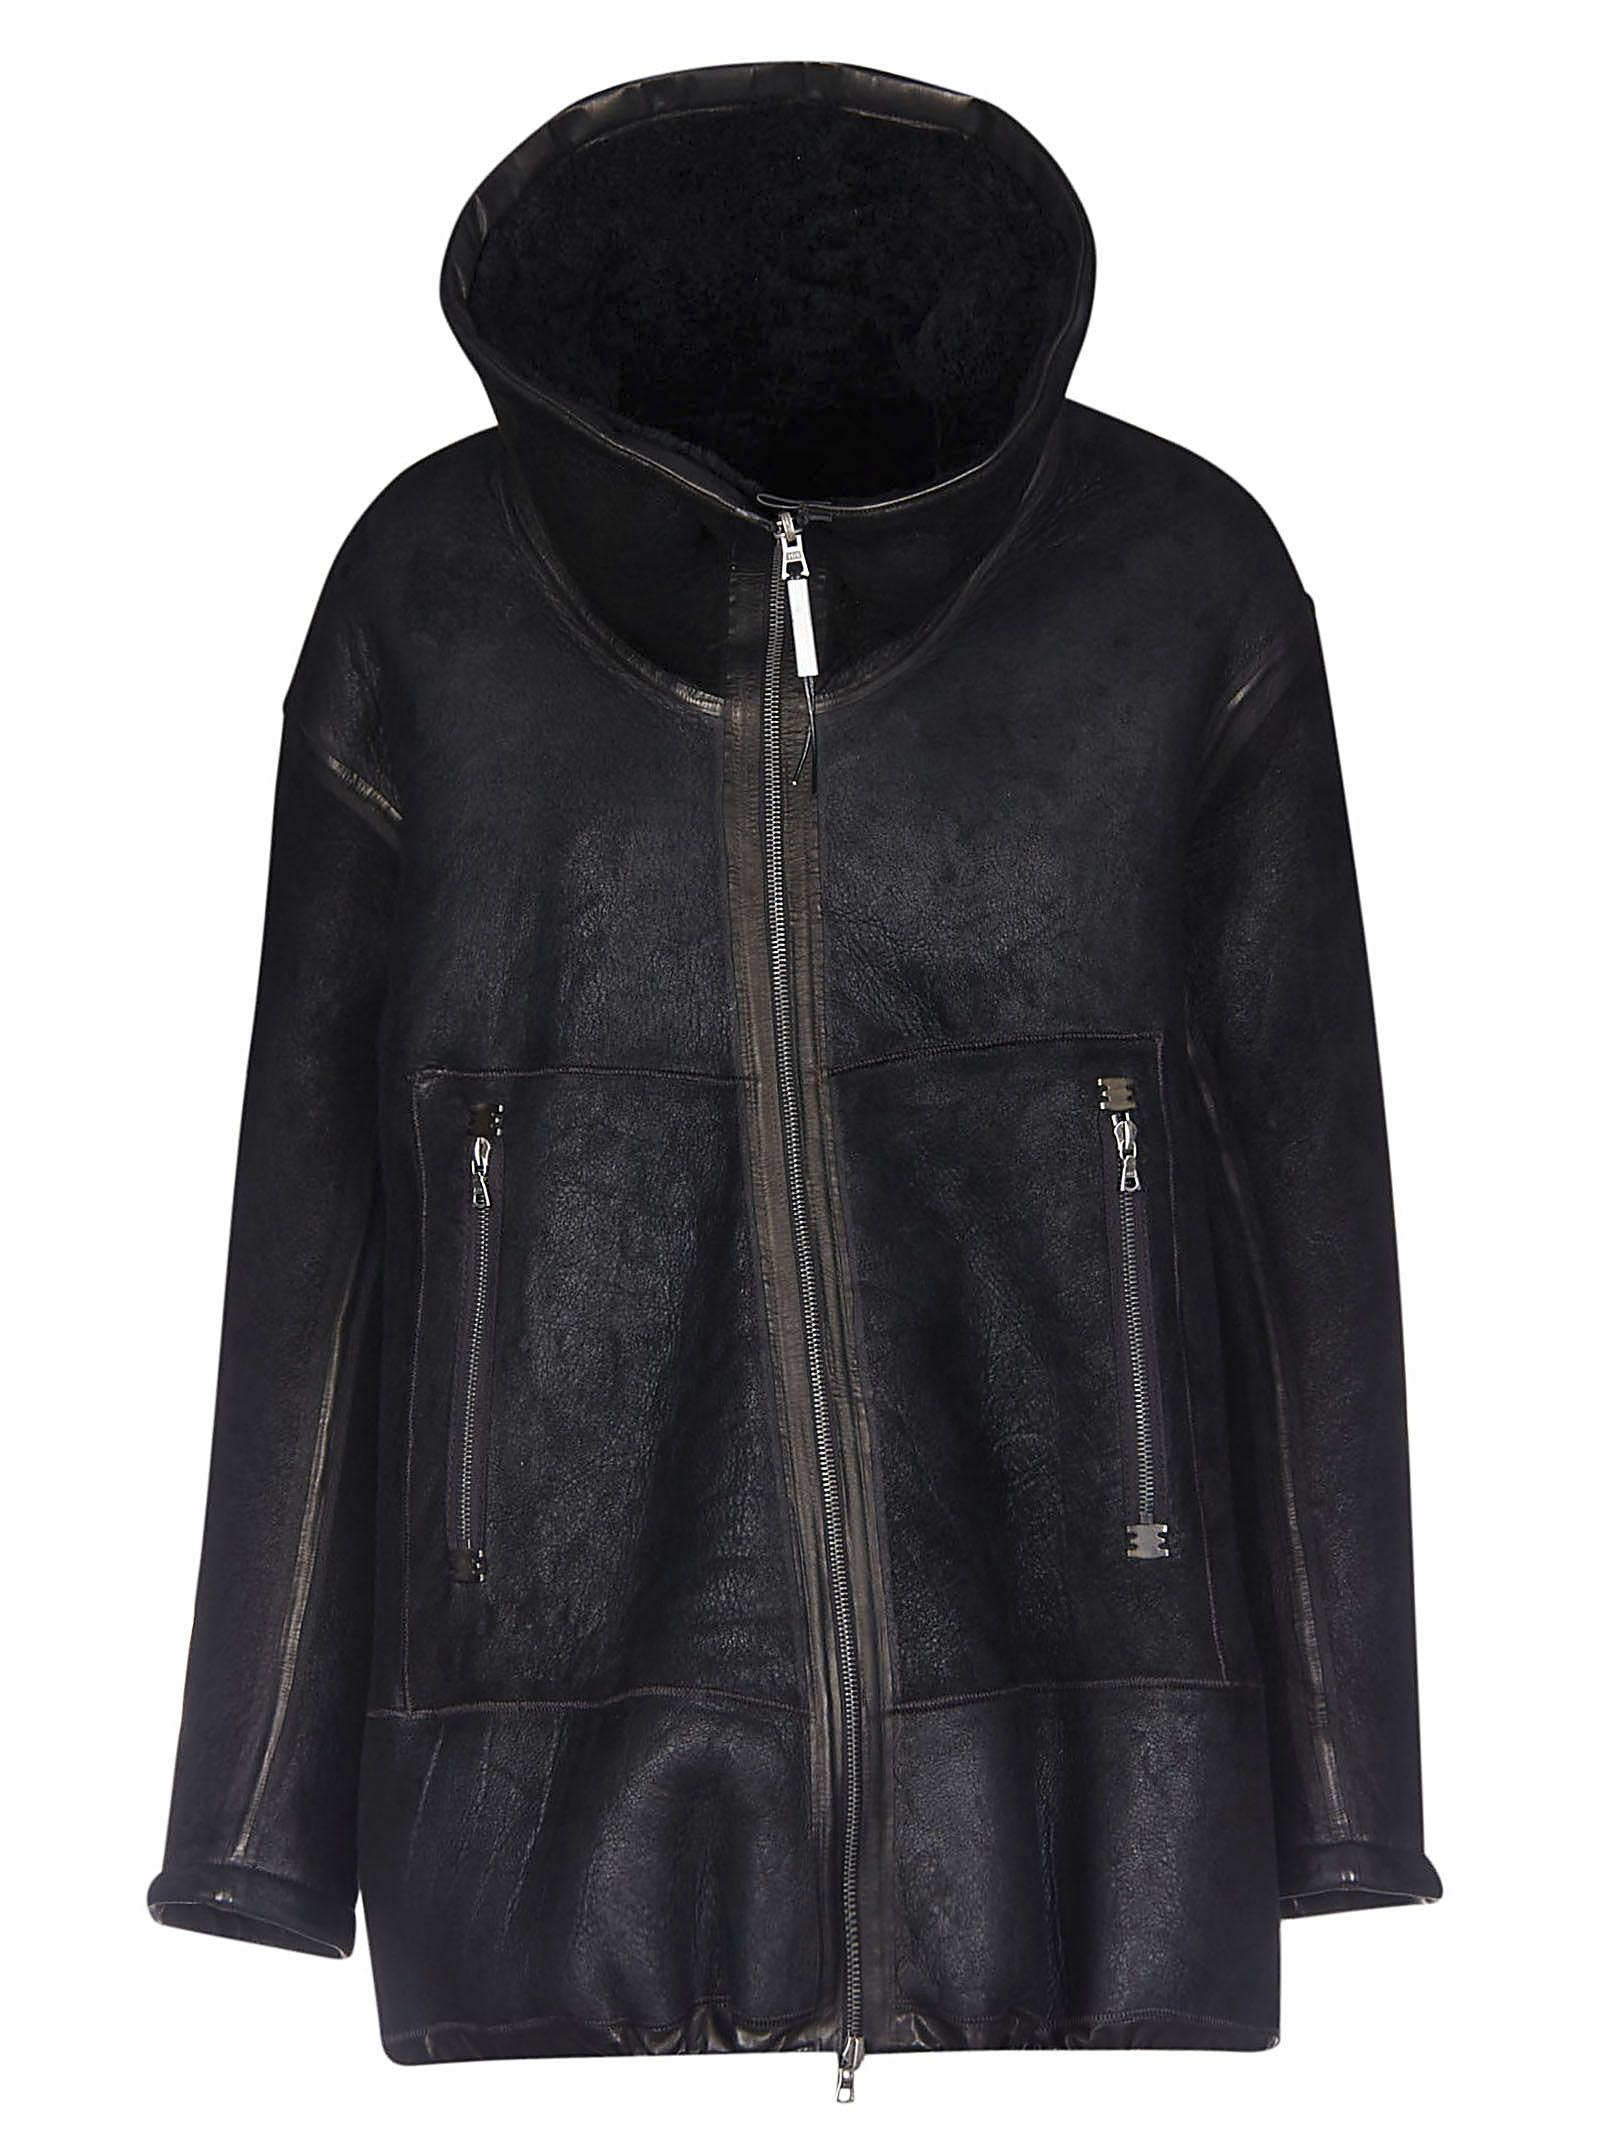 ISAAC SELLAM Short-Length Funnel Neck Jacket in Black